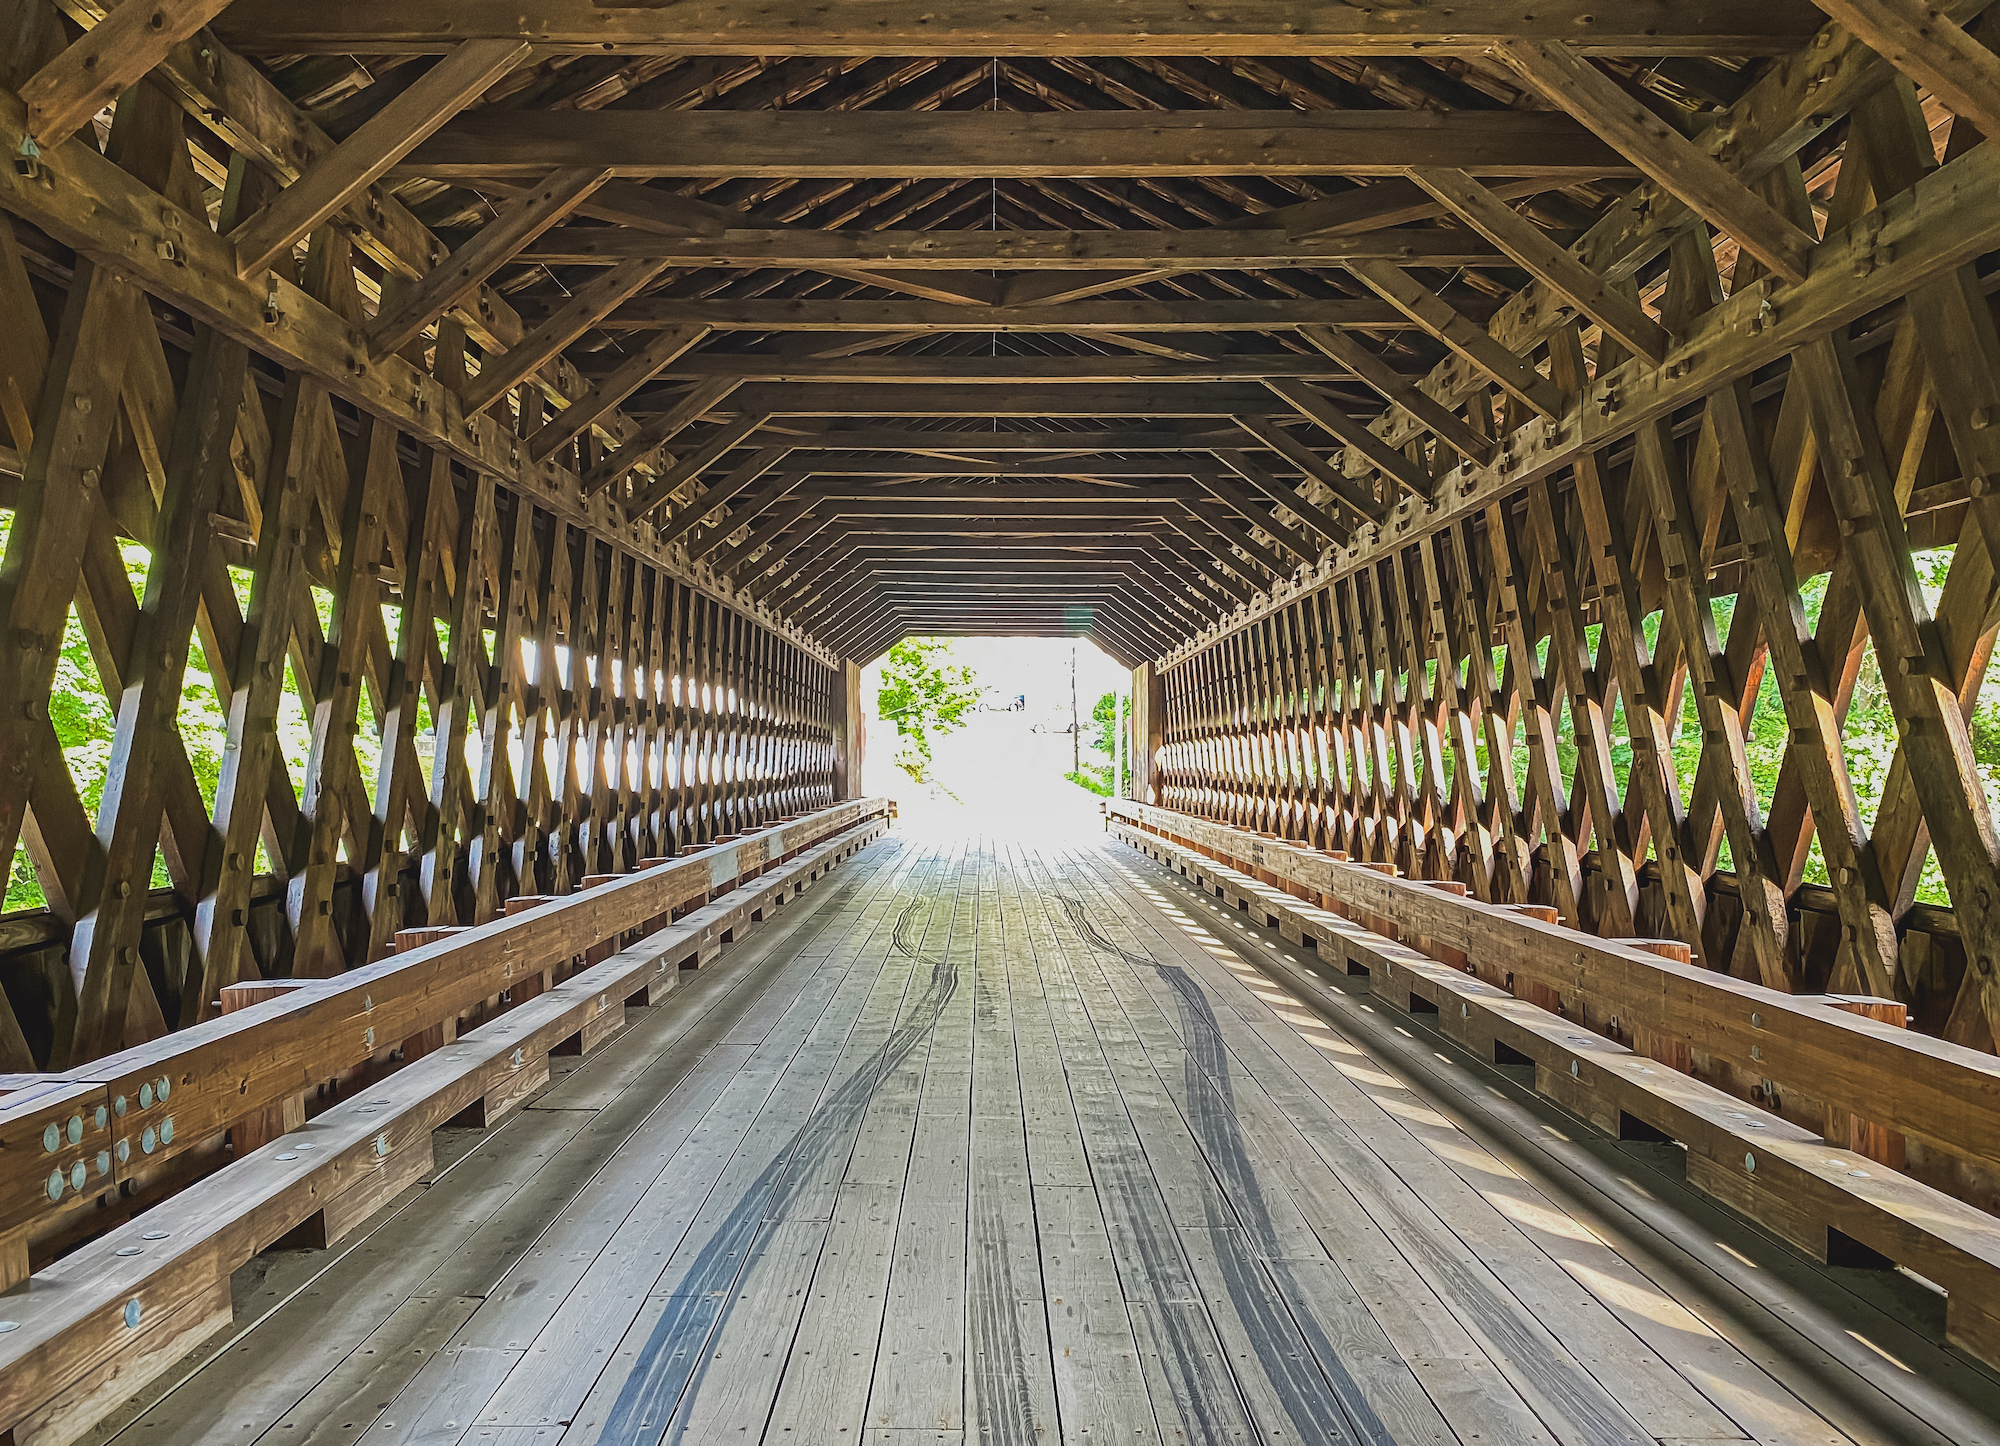 Inside the Covered Bridge, where Testosterone Comes Out to Play